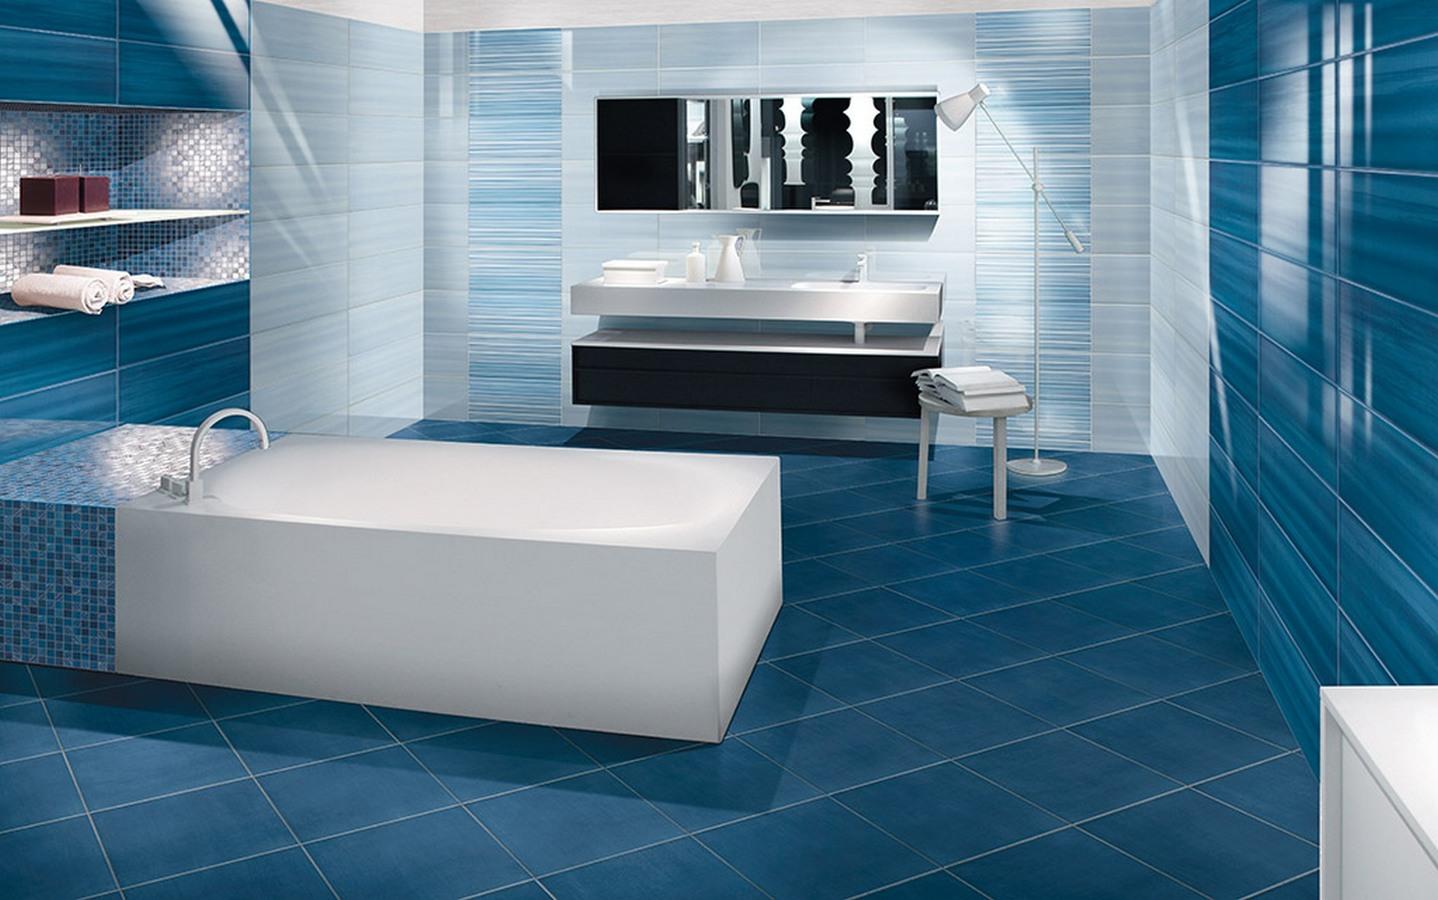 Mattonelle Bagno Ragno Skyfall Ceramic And Porcelain Tiles By Paul. Tile.expert